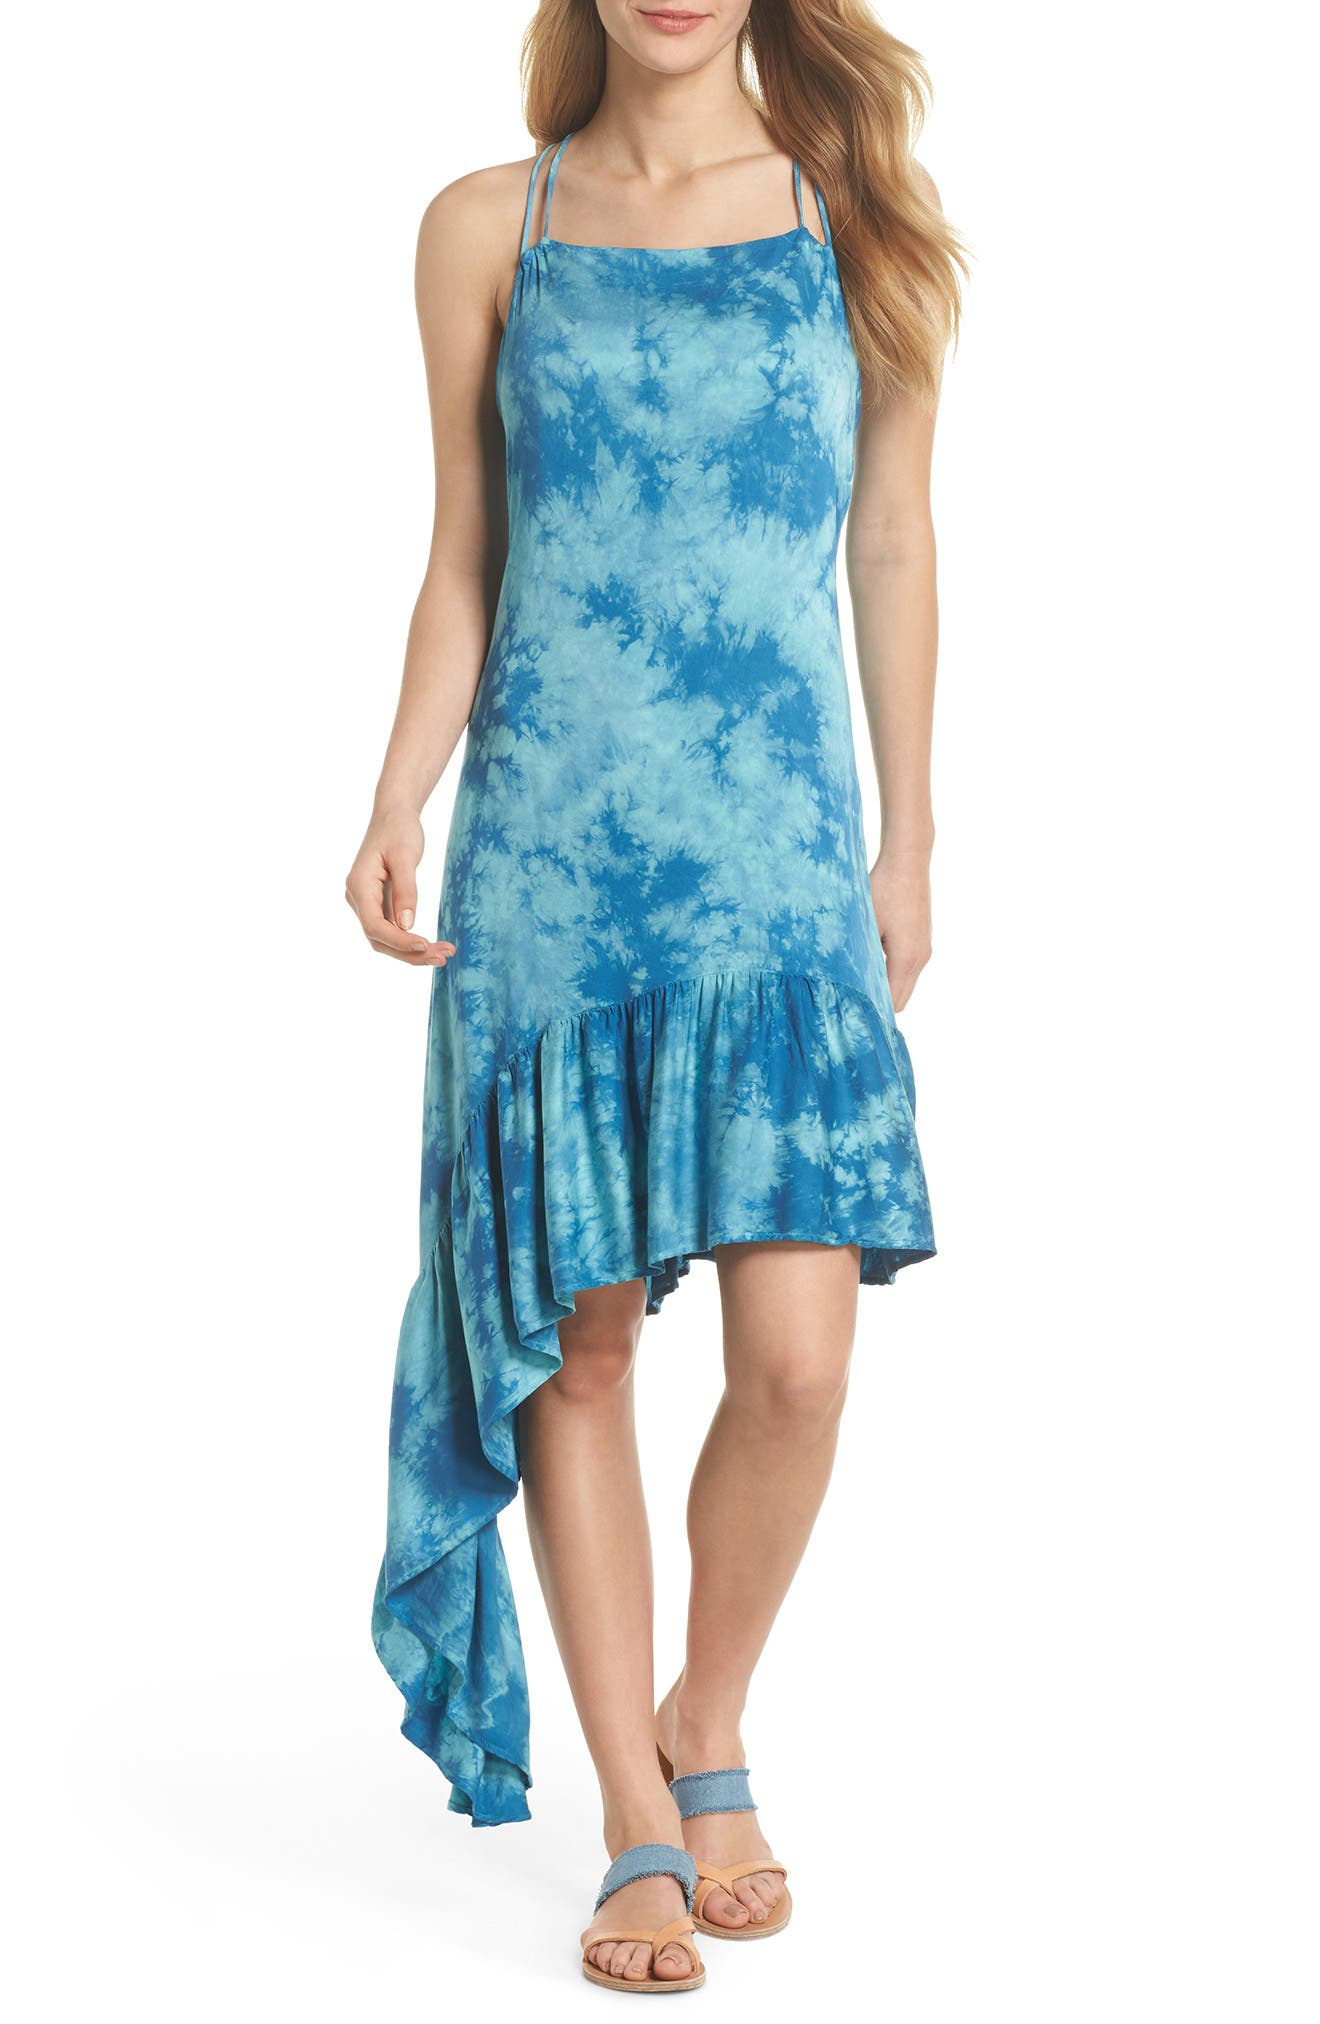 Crystal Forest Clementine Cover-Up Dress,                             Main thumbnail 1, color,                             401